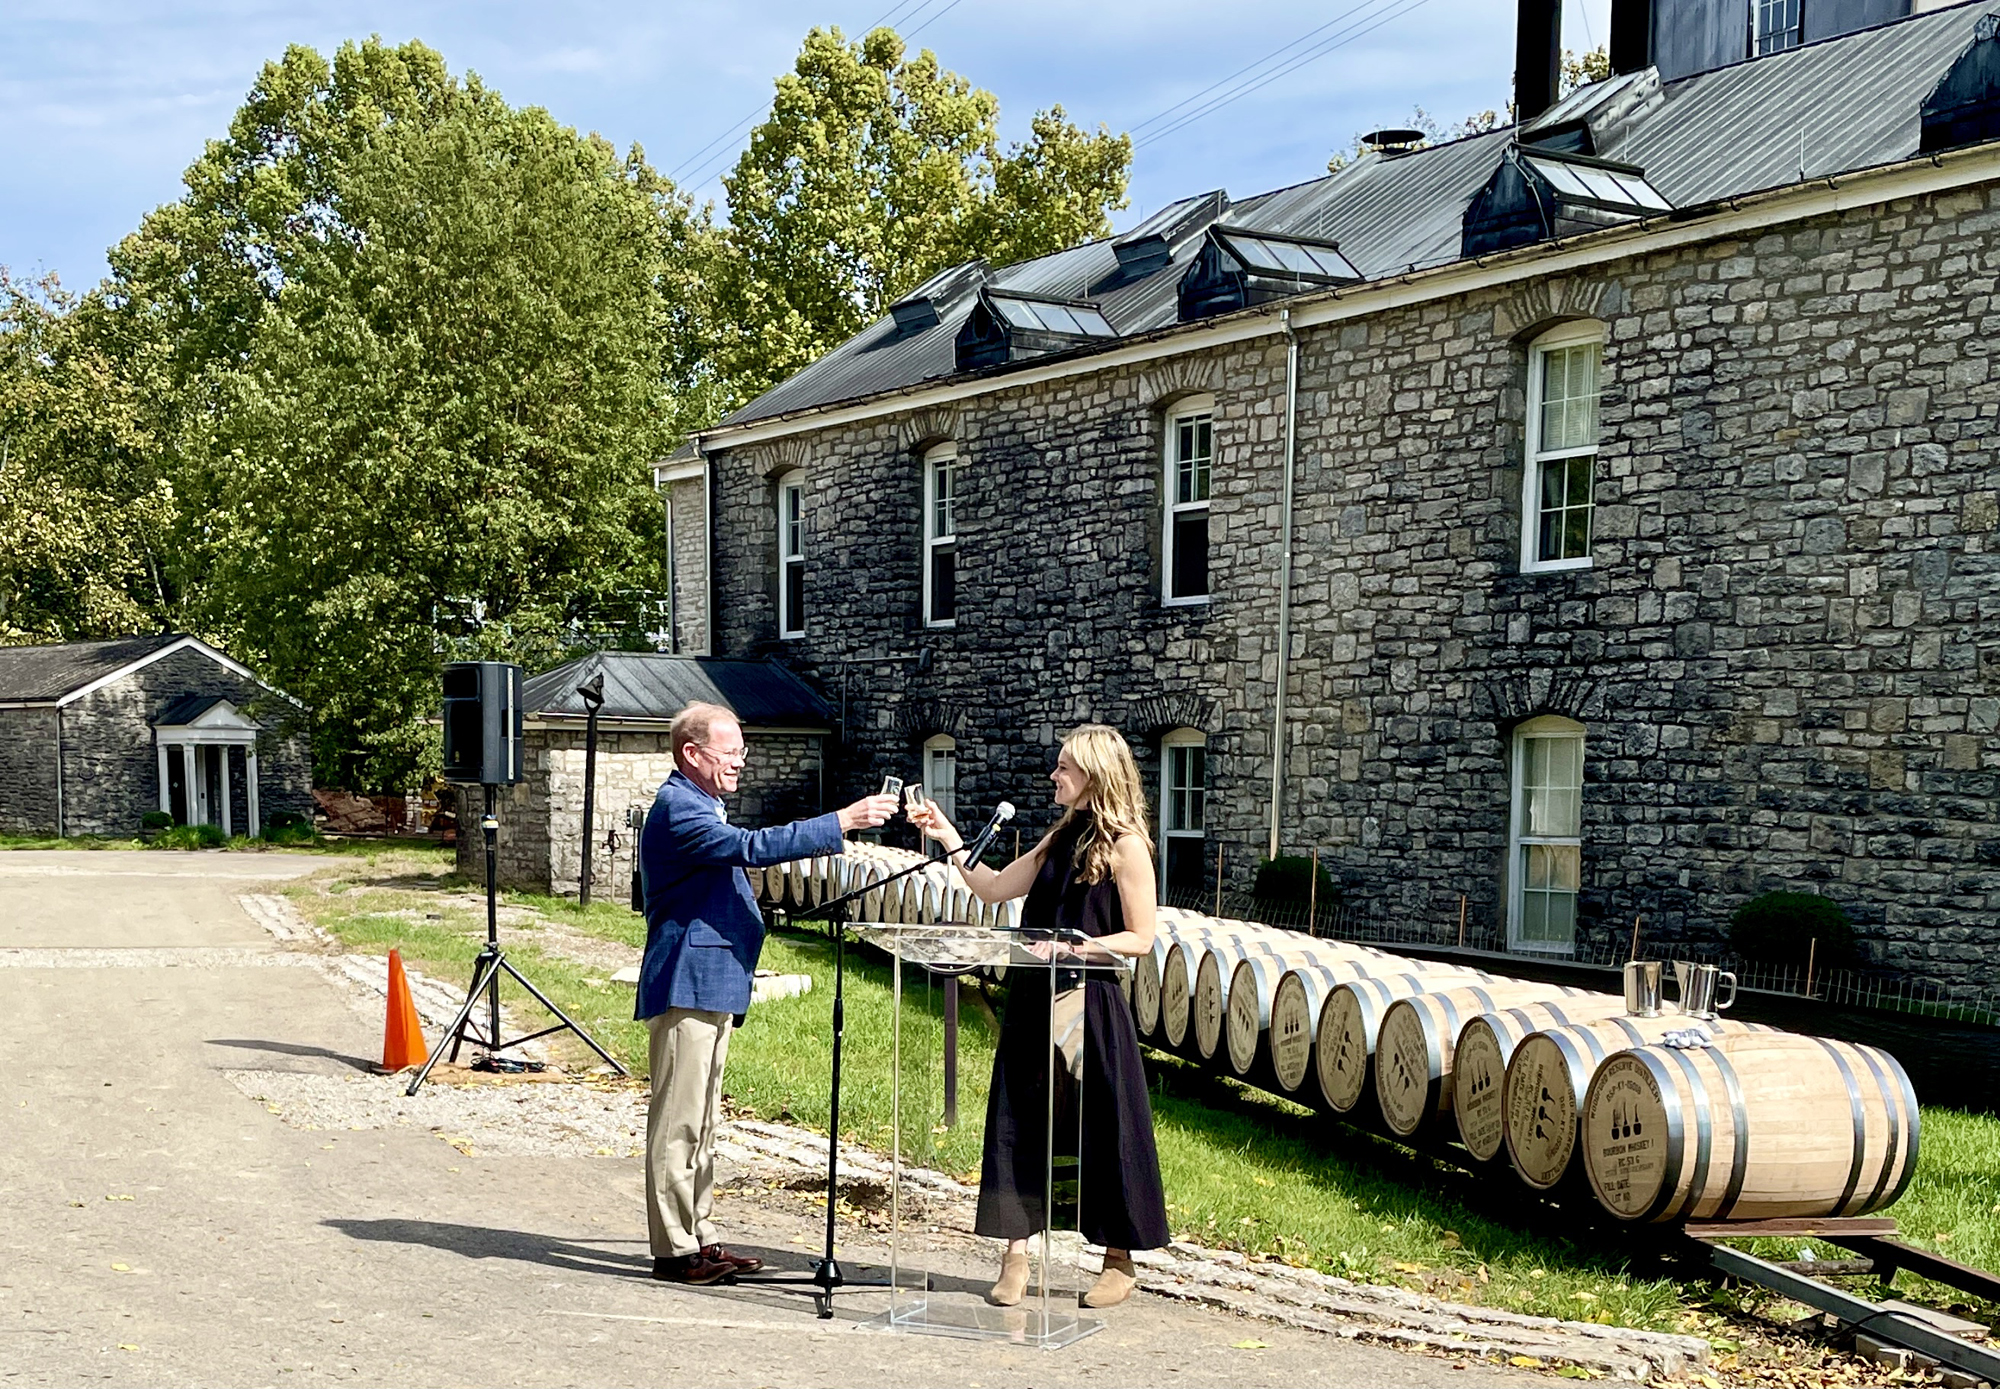 A scene at Woodford Reserve Distillery